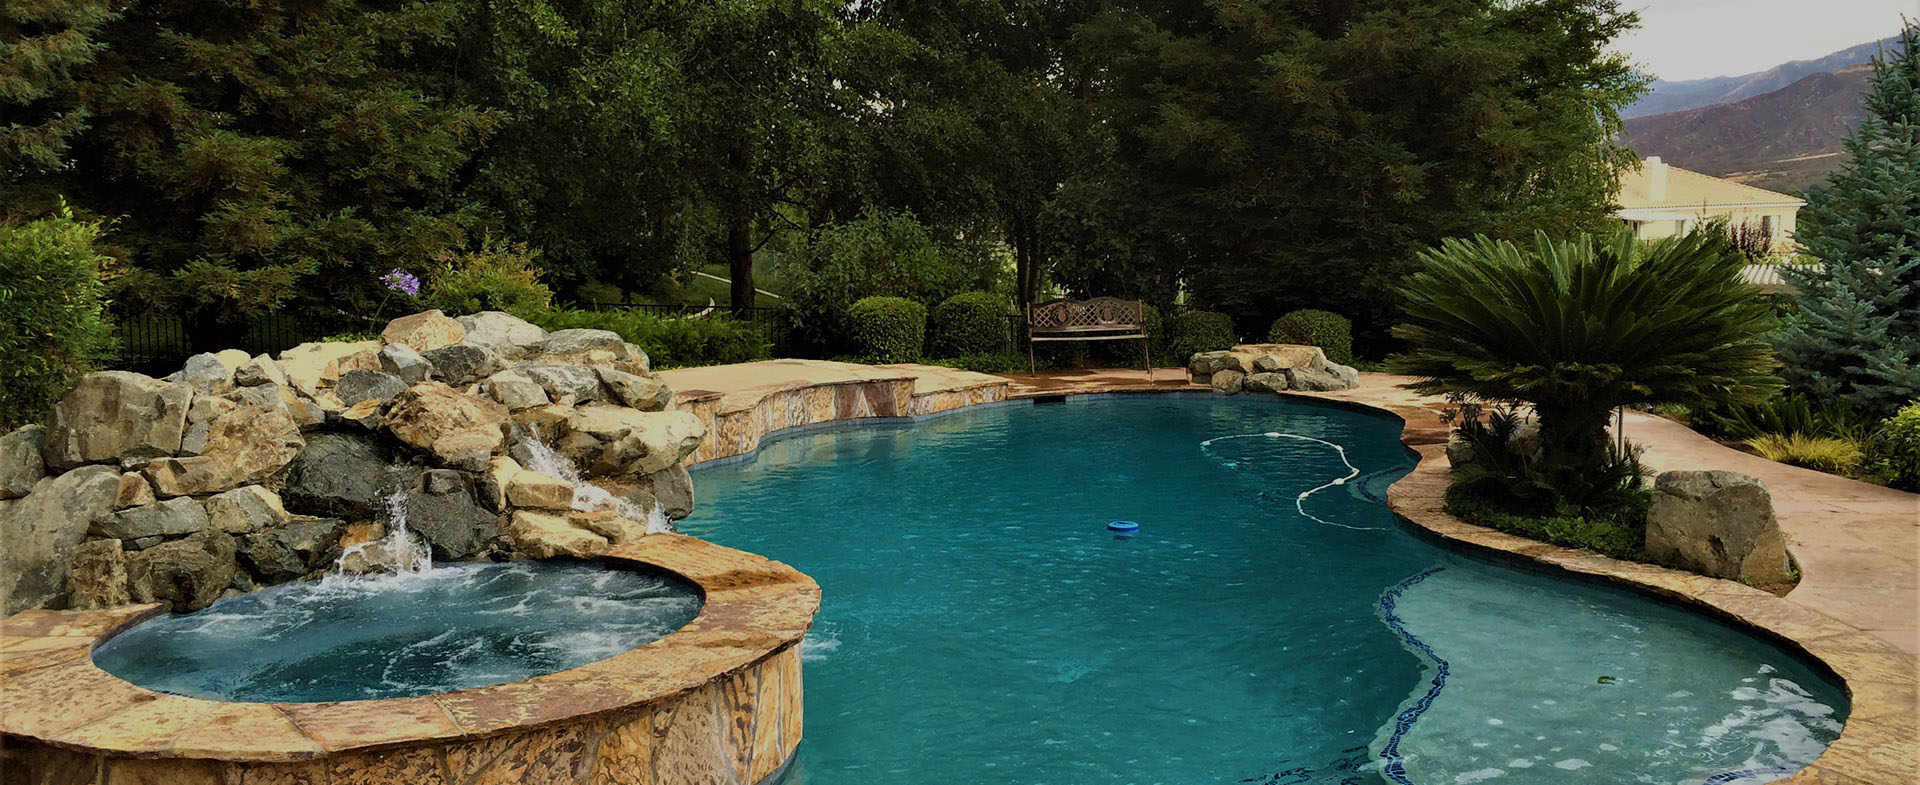 Pool Maintenance Service in Redlands and Yucaipa